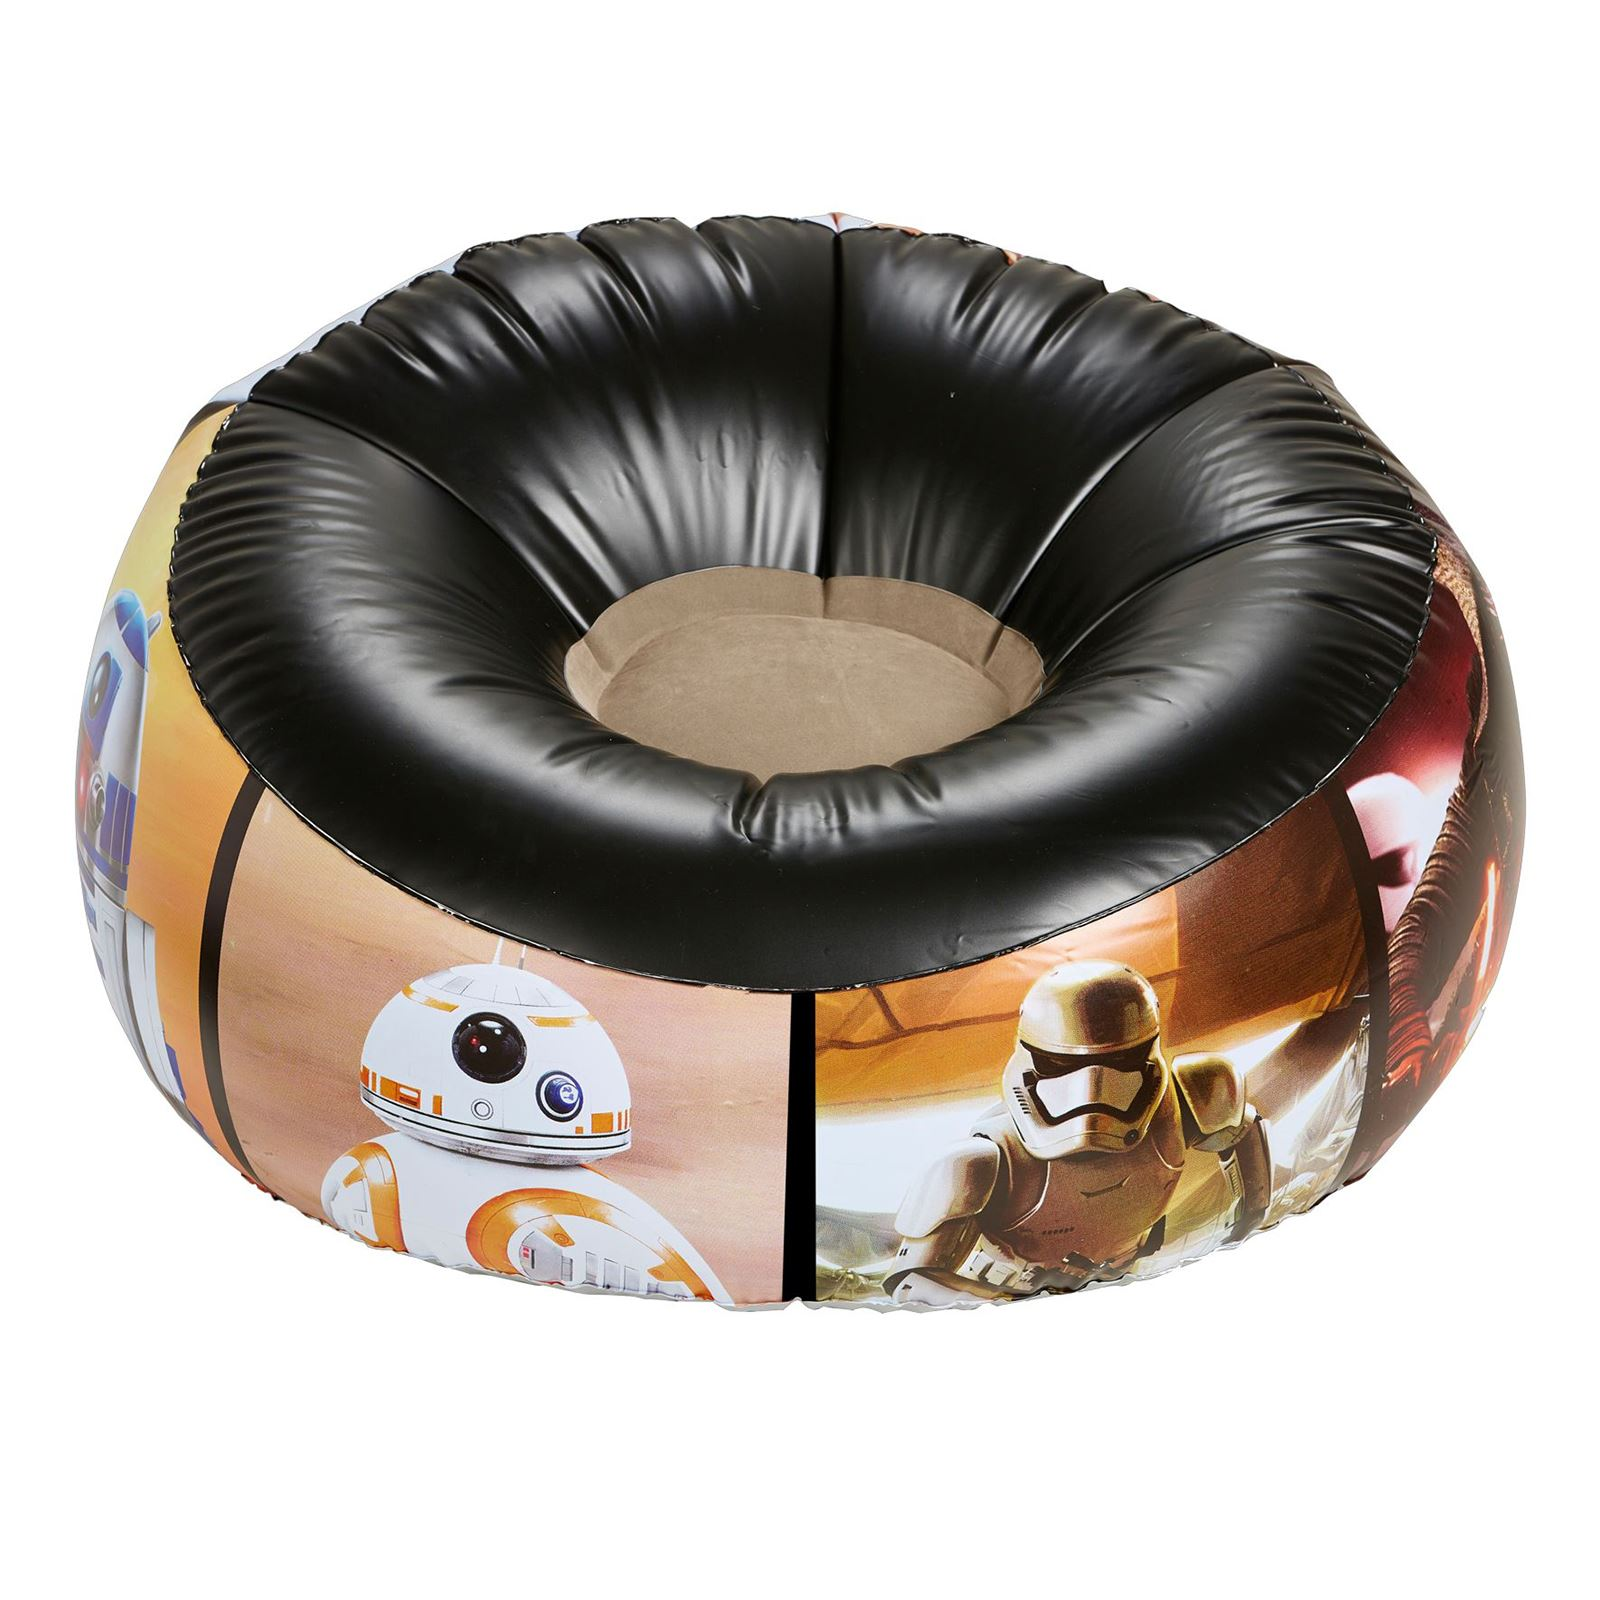 Star Wars Chairs Kids Junior Lightweight Inflatable Chair Paw Patrol My